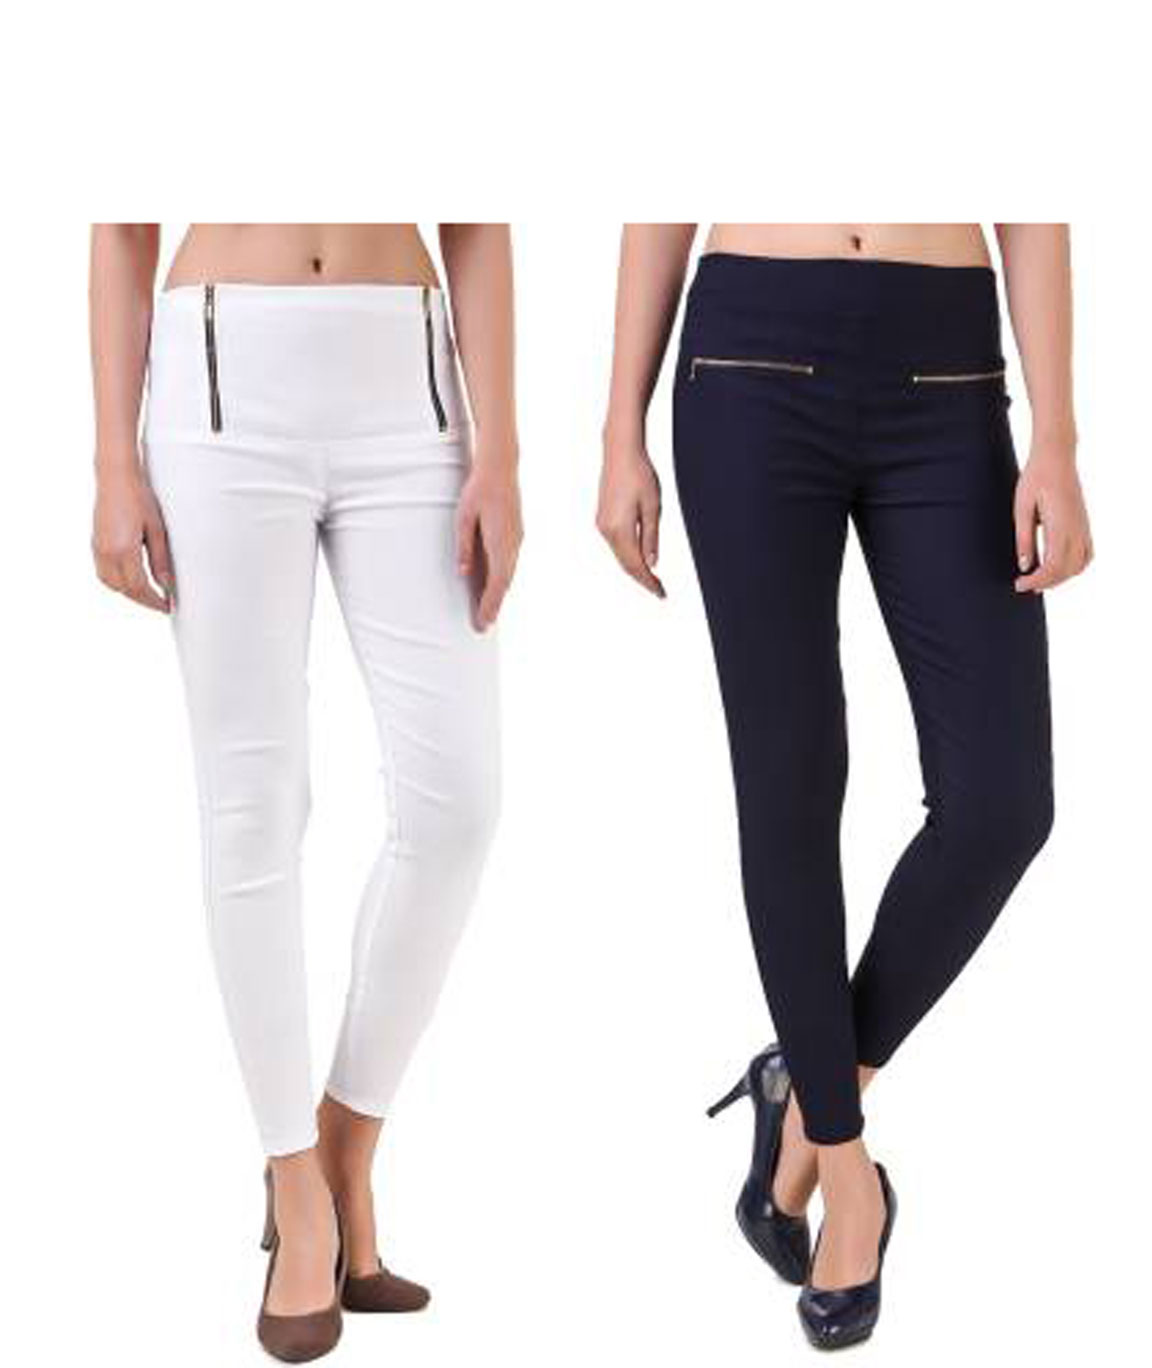 I KING WHITE, NAVY BLUE JEGGING  (SOLID)